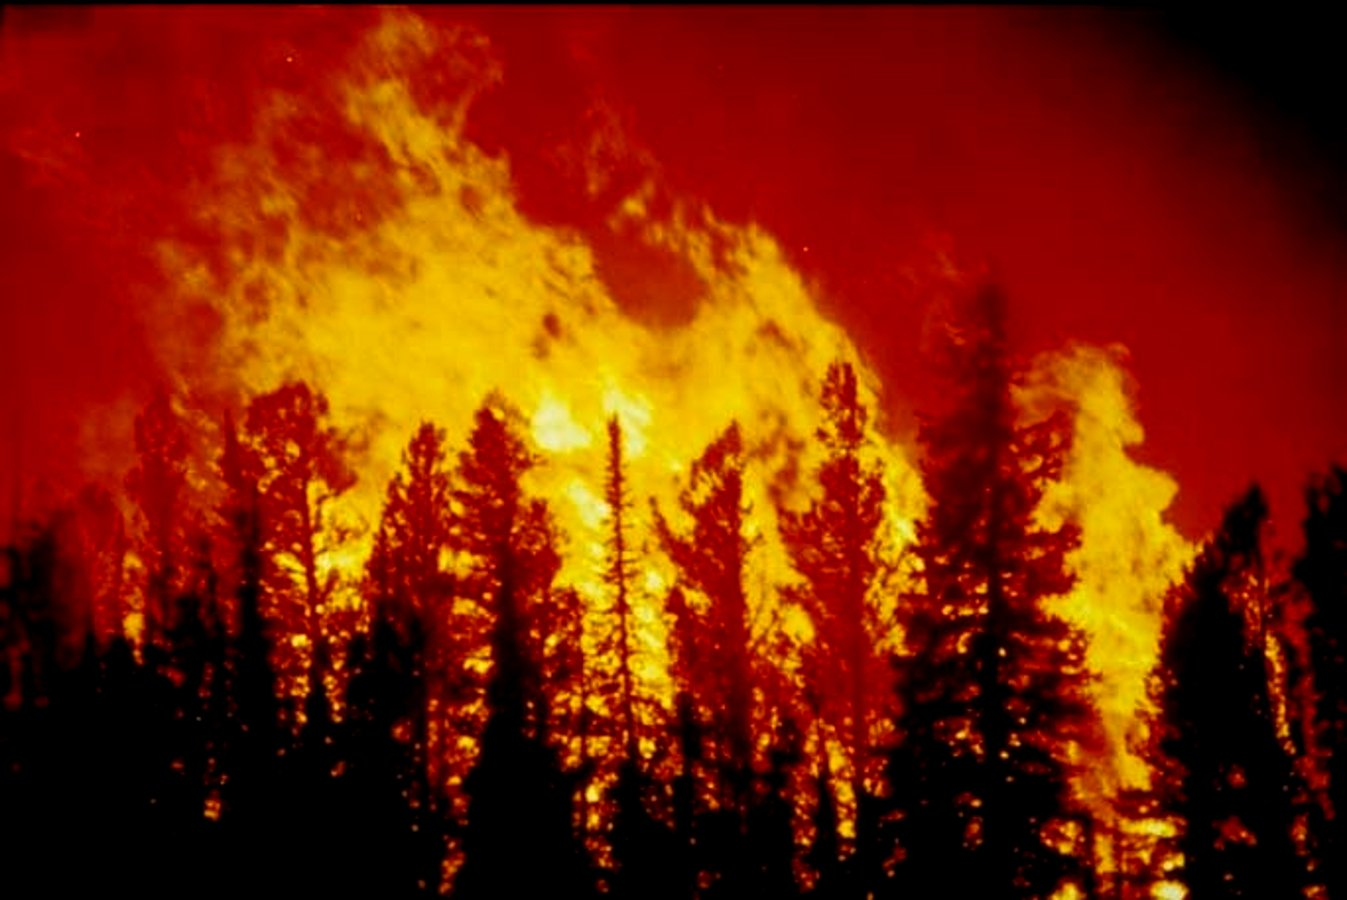 forest fire blm image background image wallpaper or